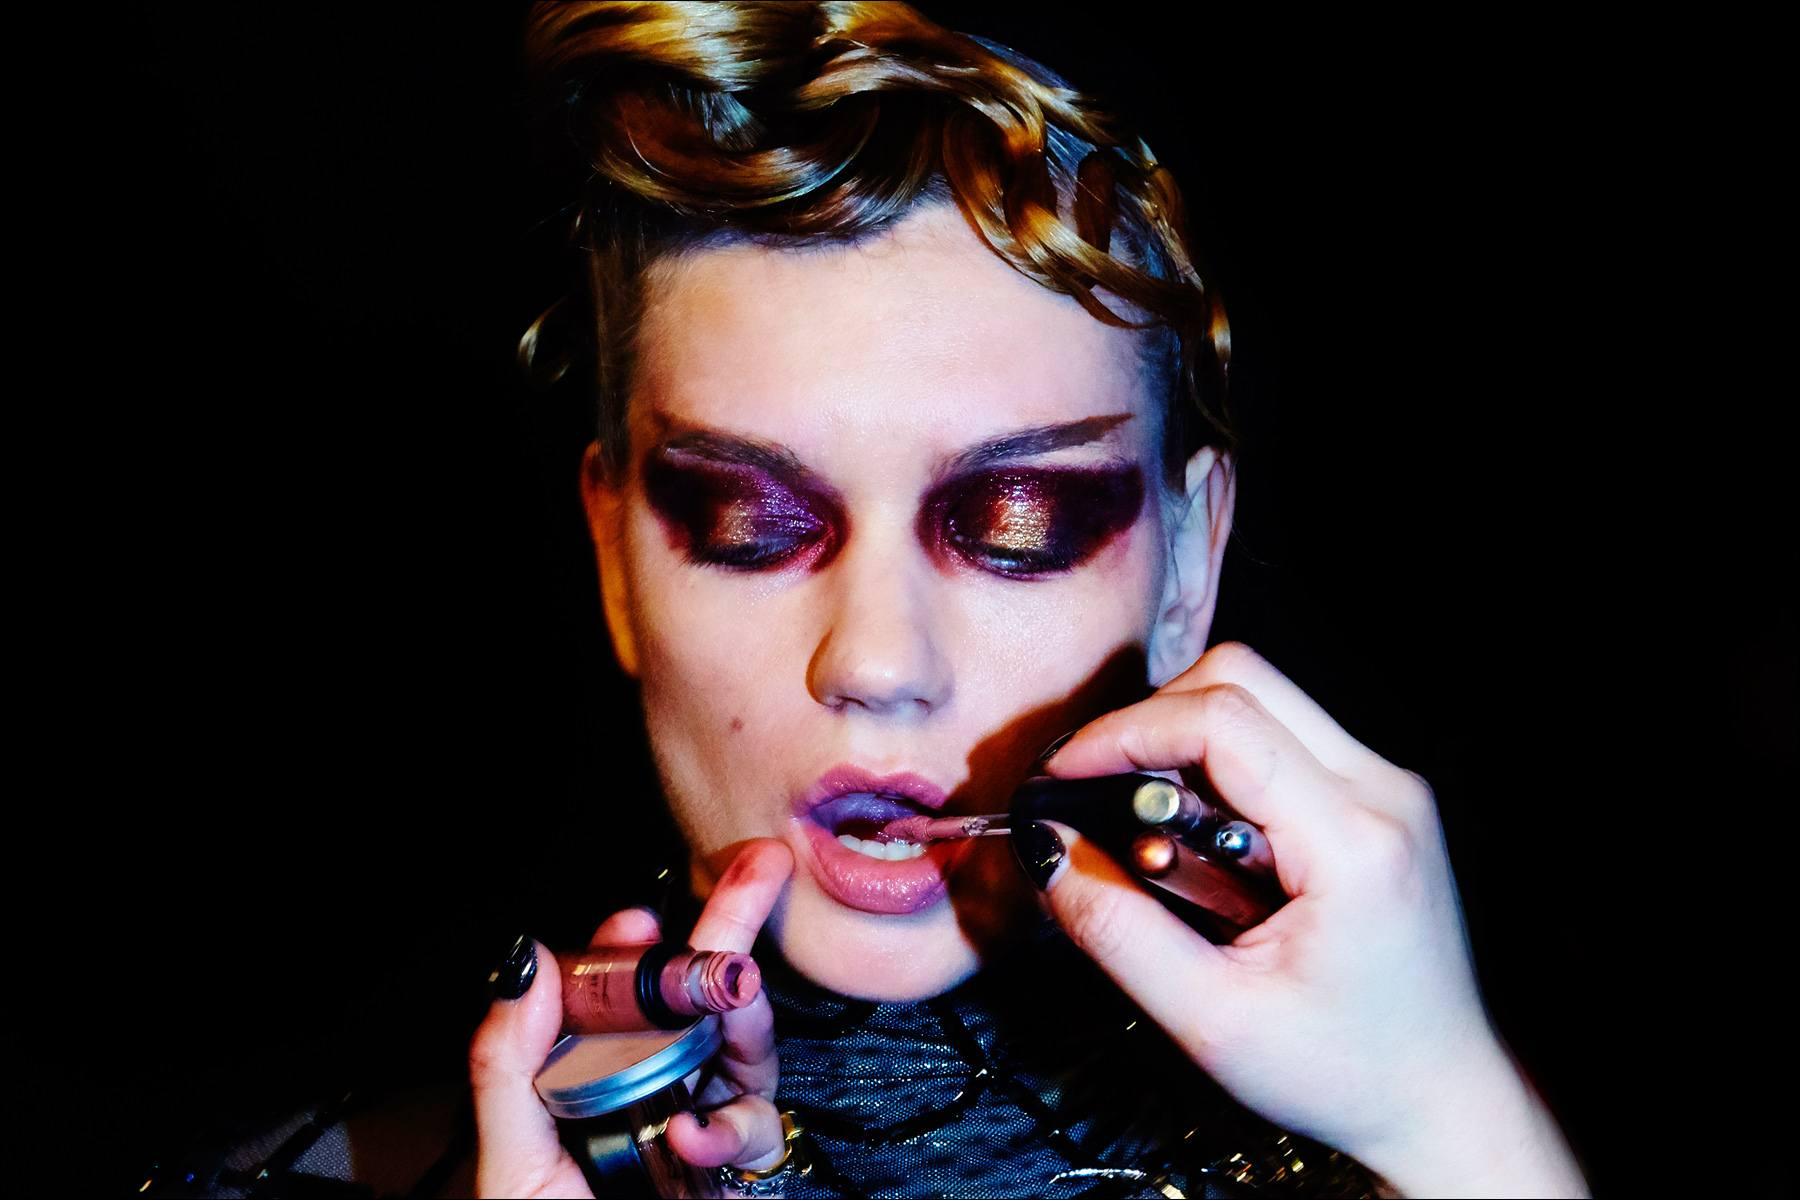 Model Lyoka Tyagnereva has her makeup retouched before walking for The Blonds Fall 2017 womenswear runway show. Photography by Alexander Thompson for Ponyboy magazine New York.